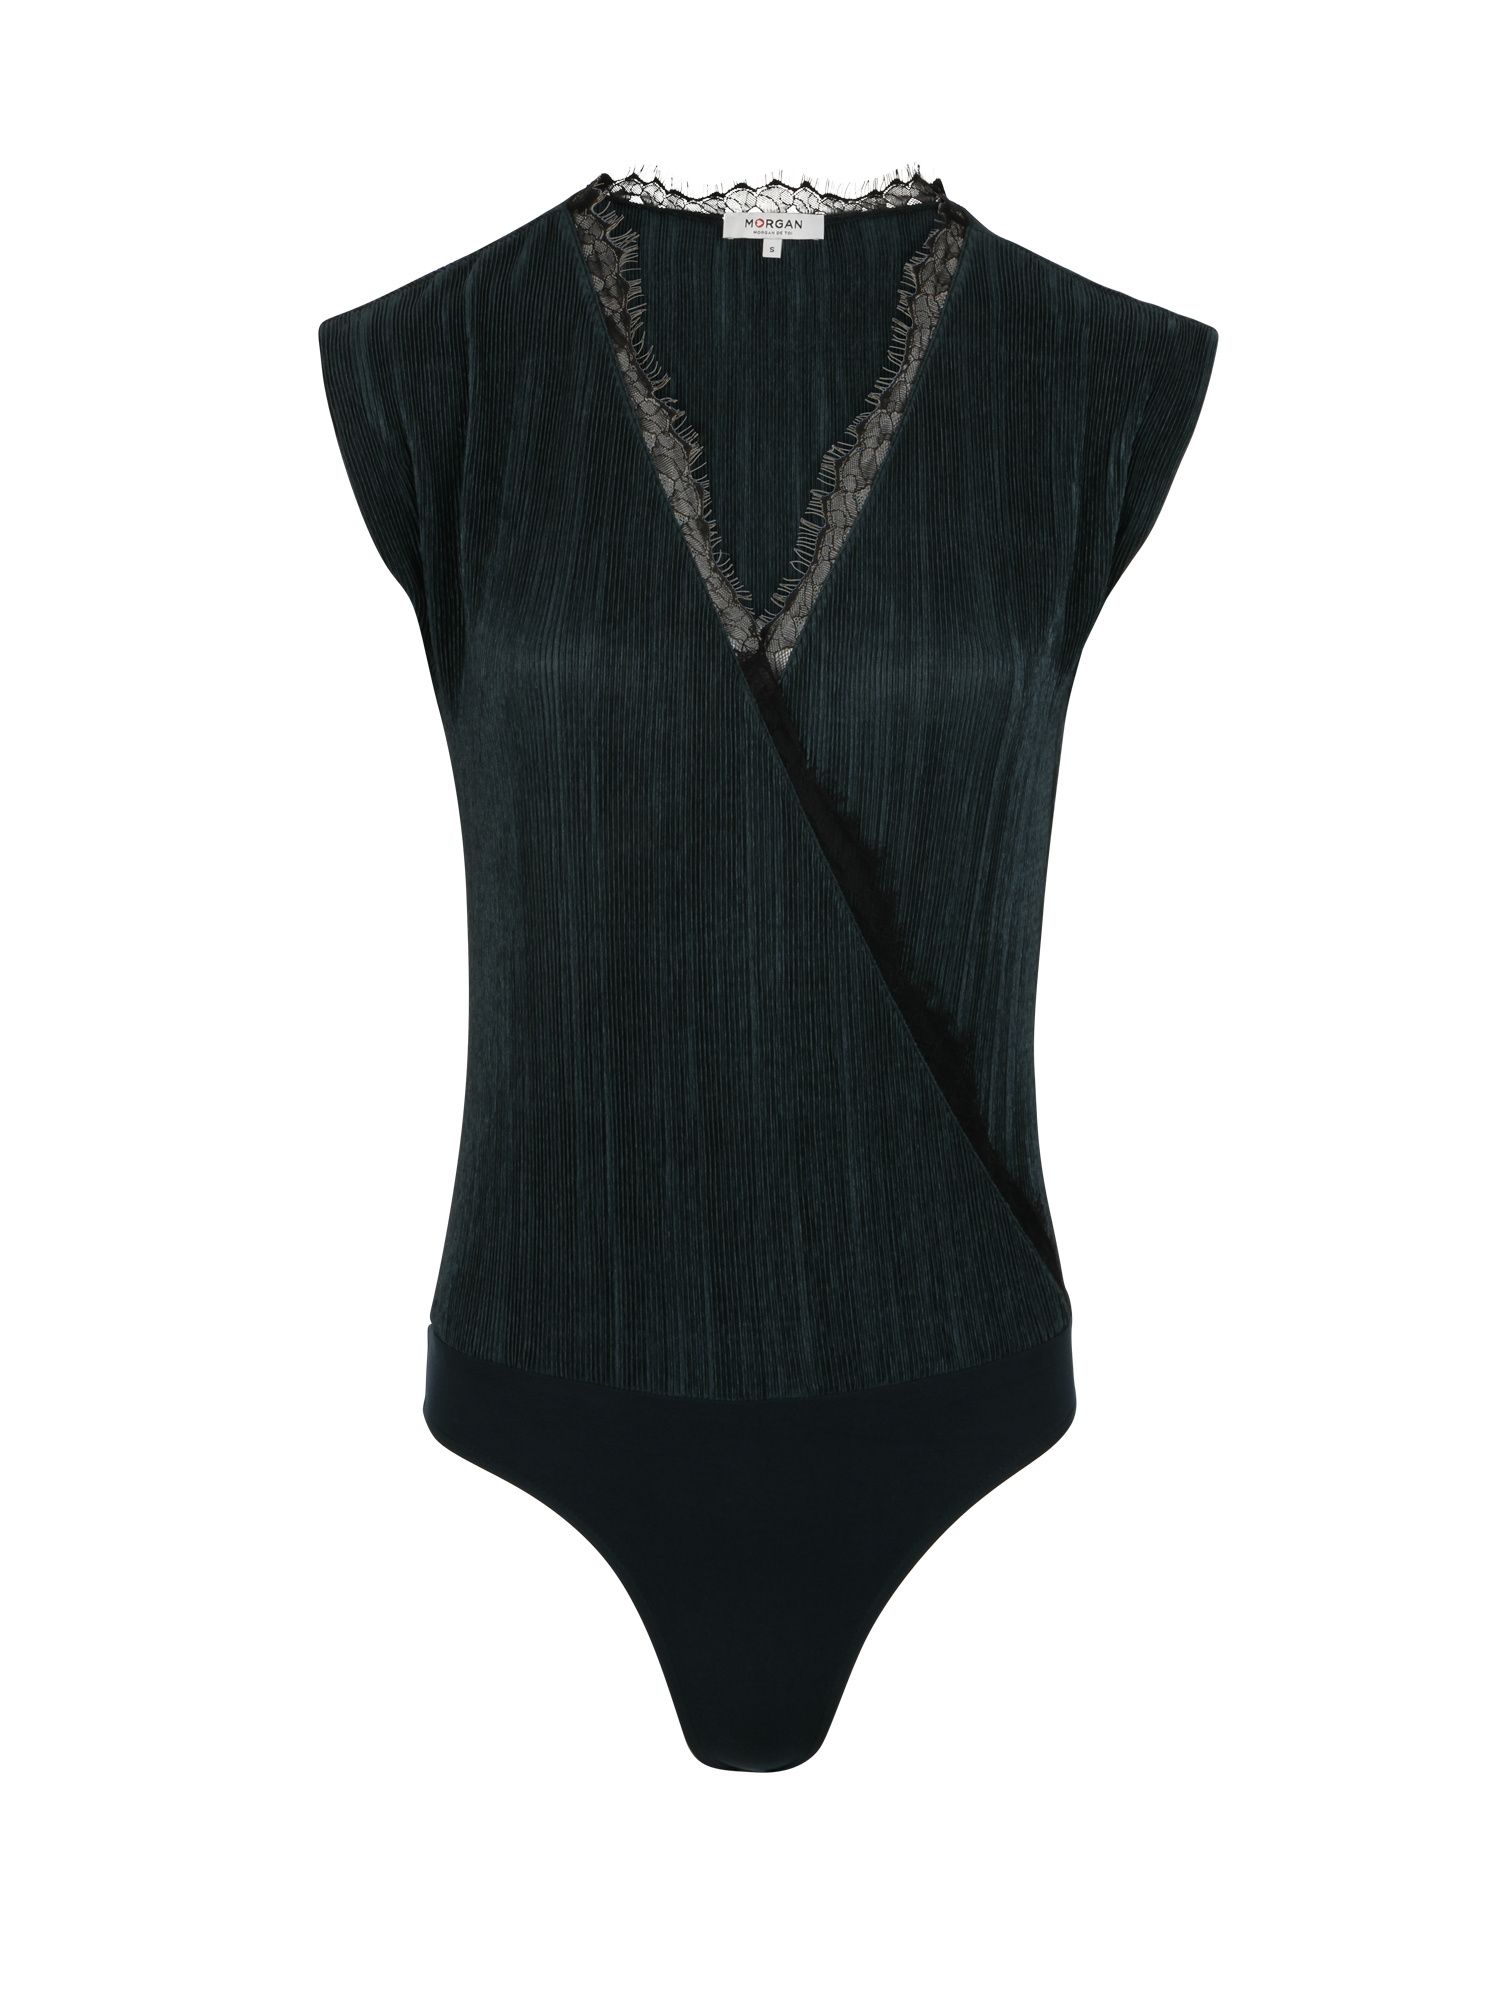 Morgan Pleated Satin Bodysuit With Lace Trim, Green